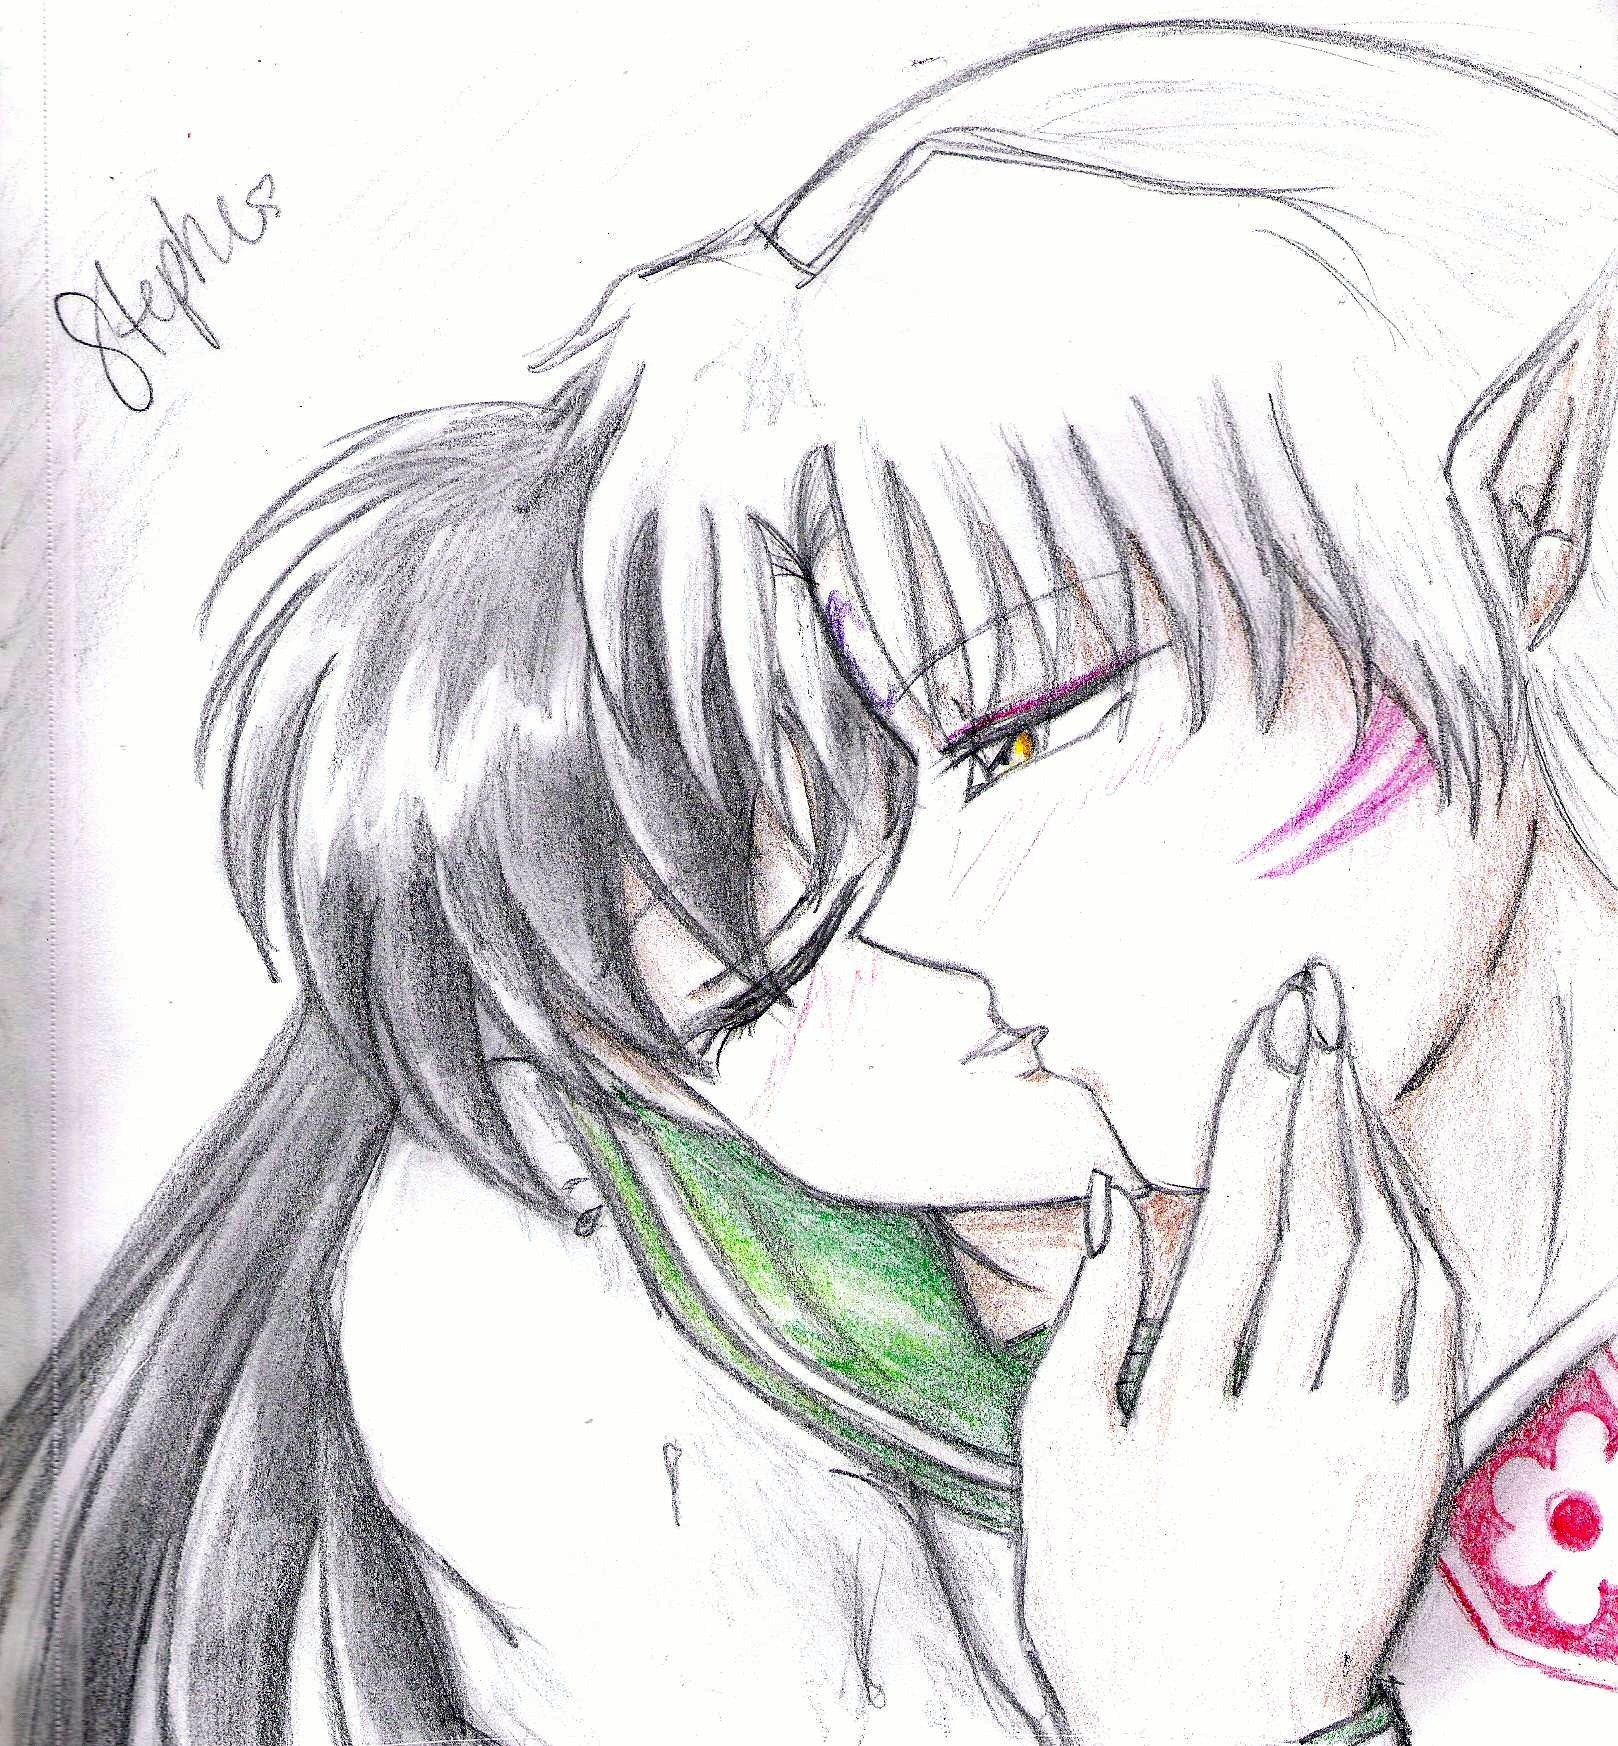 Sesshomaru Love Story Lemon http://genuardis.net/sesshomaru/sesshomaru-and-kagome-lemon-story.htm